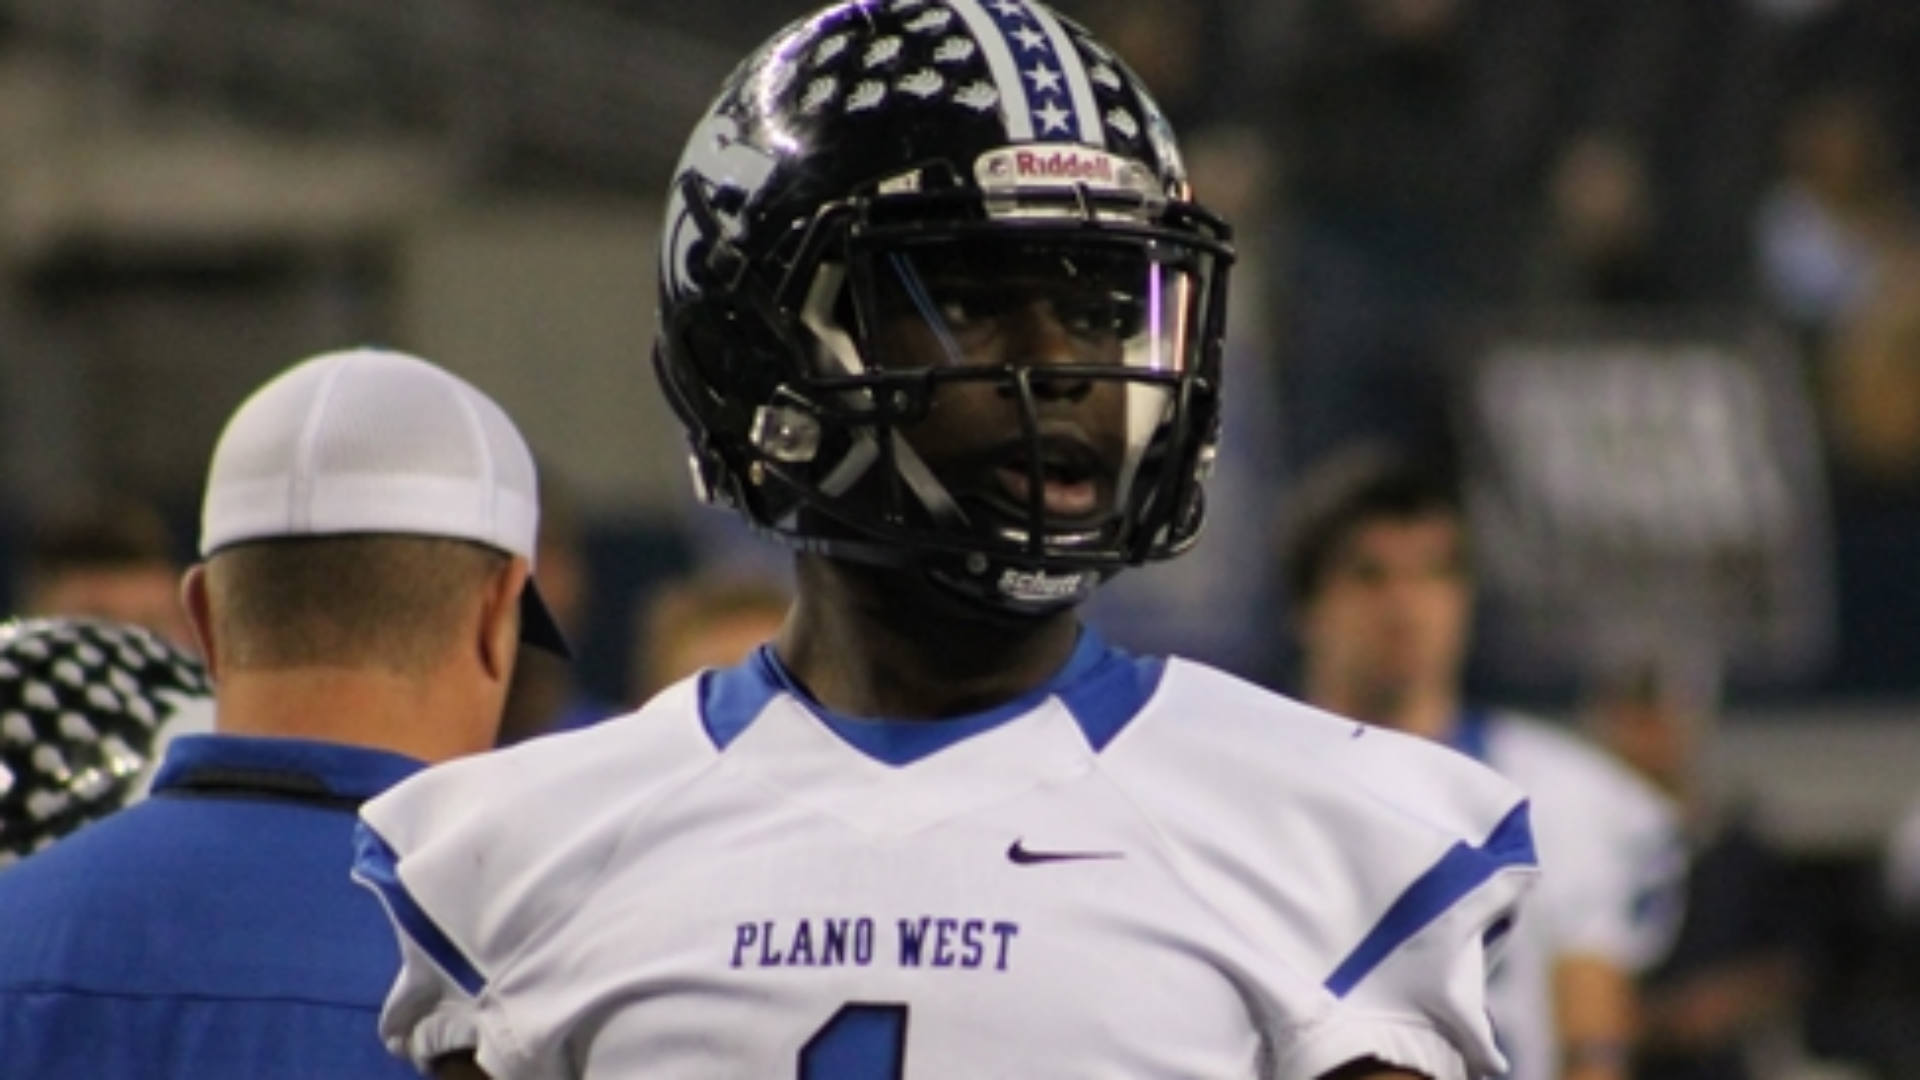 UCLA 5-star RB signee Soso Jamabo arrested, faces multiple charges